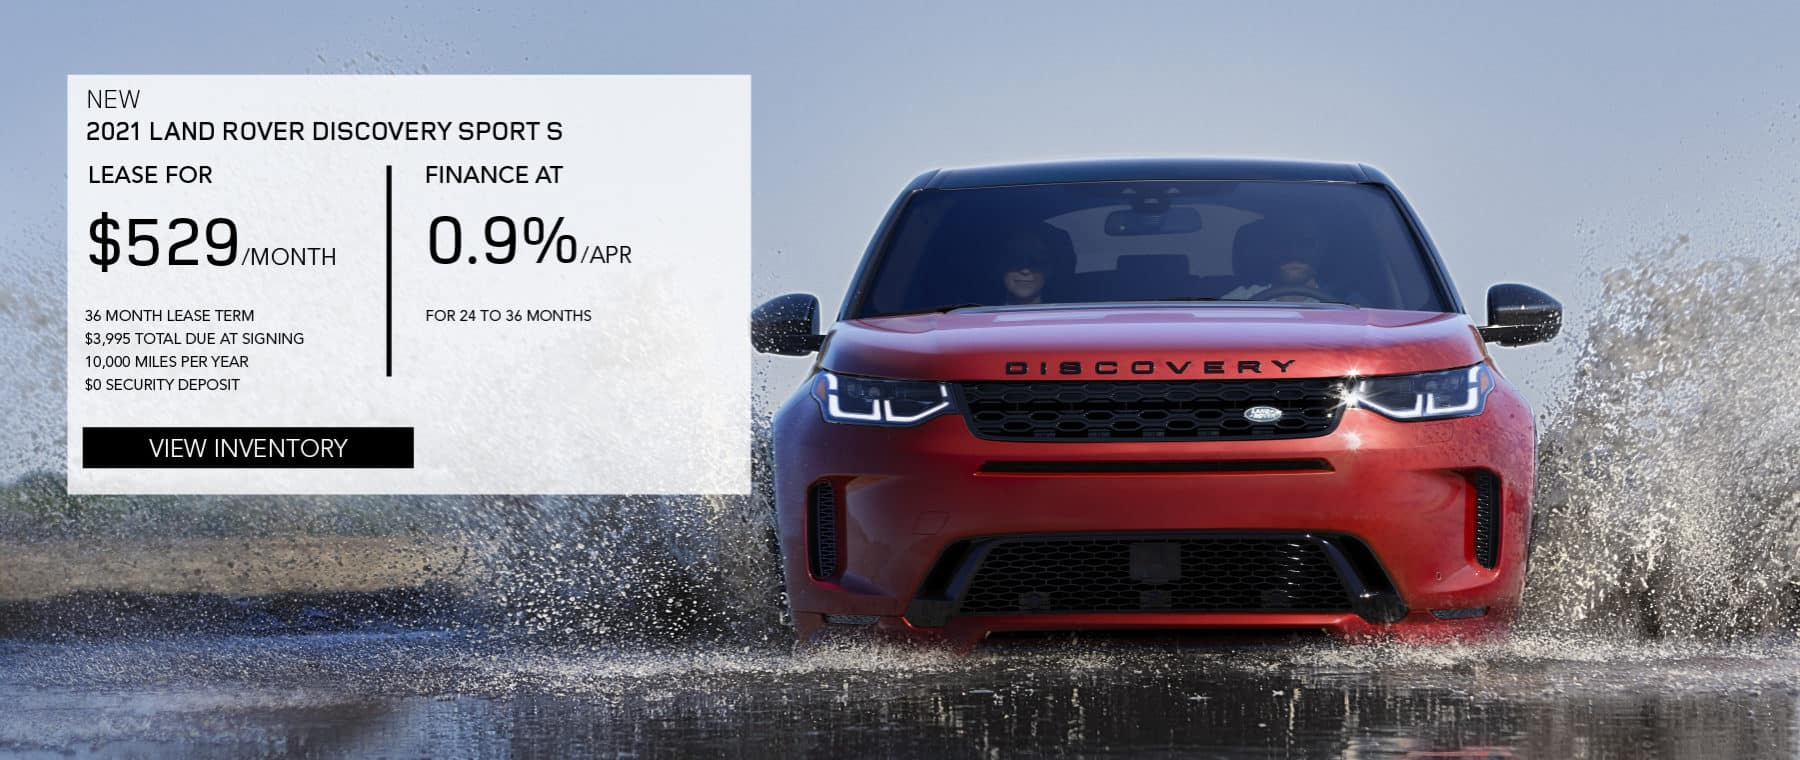 NEW 2021 LAND ROVER DISCOVERY SPORT S. $529 PER MONTH. 36 MONTH LEASE TERM. $3,995 CASH DUE AT SIGNING. $0 SECURITY DEPOSIT. 10,000 MILES PER YEAR. EXCLUDES RETAILER FEES, TAXES, TITLE AND REGISTRATION FEES, PROCESSING FEE AND ANY EMISSION TESTING CHARGE. OFFER ENDS 9/30/2021. VIEW INVENTORY. RED LAND ROVER DISCOVERY SPORT DRIVING INTO LAKE.